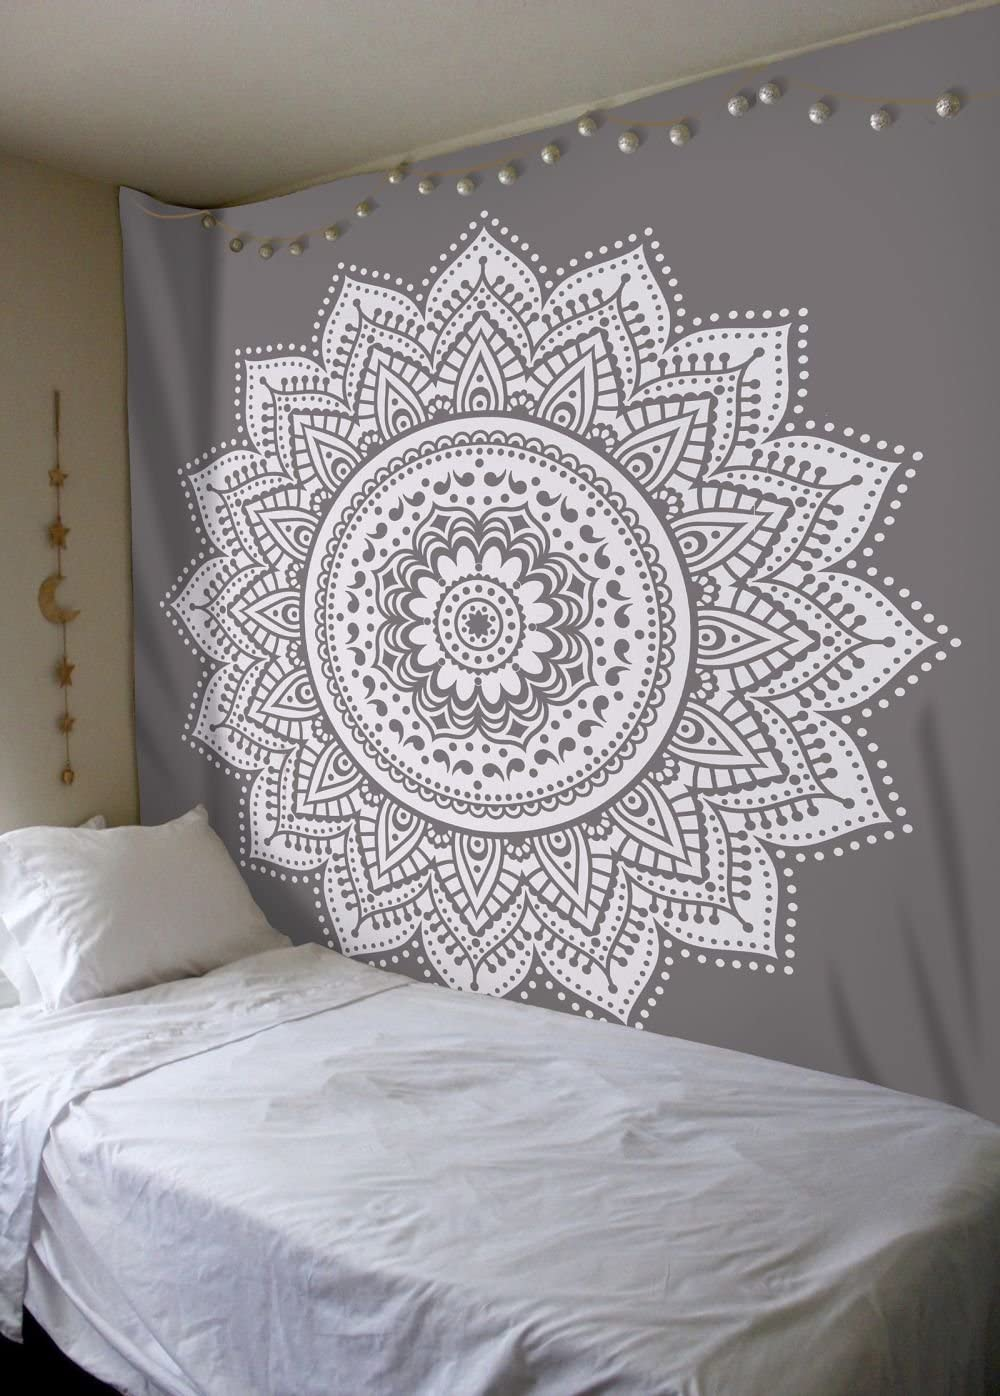 Labhanshi Gray Mandala Tapestry, Indian Hippie Wall Hanging, Bohemian Queen Wall Hanging, Bedspread Beach Tapestry 82×92 inch